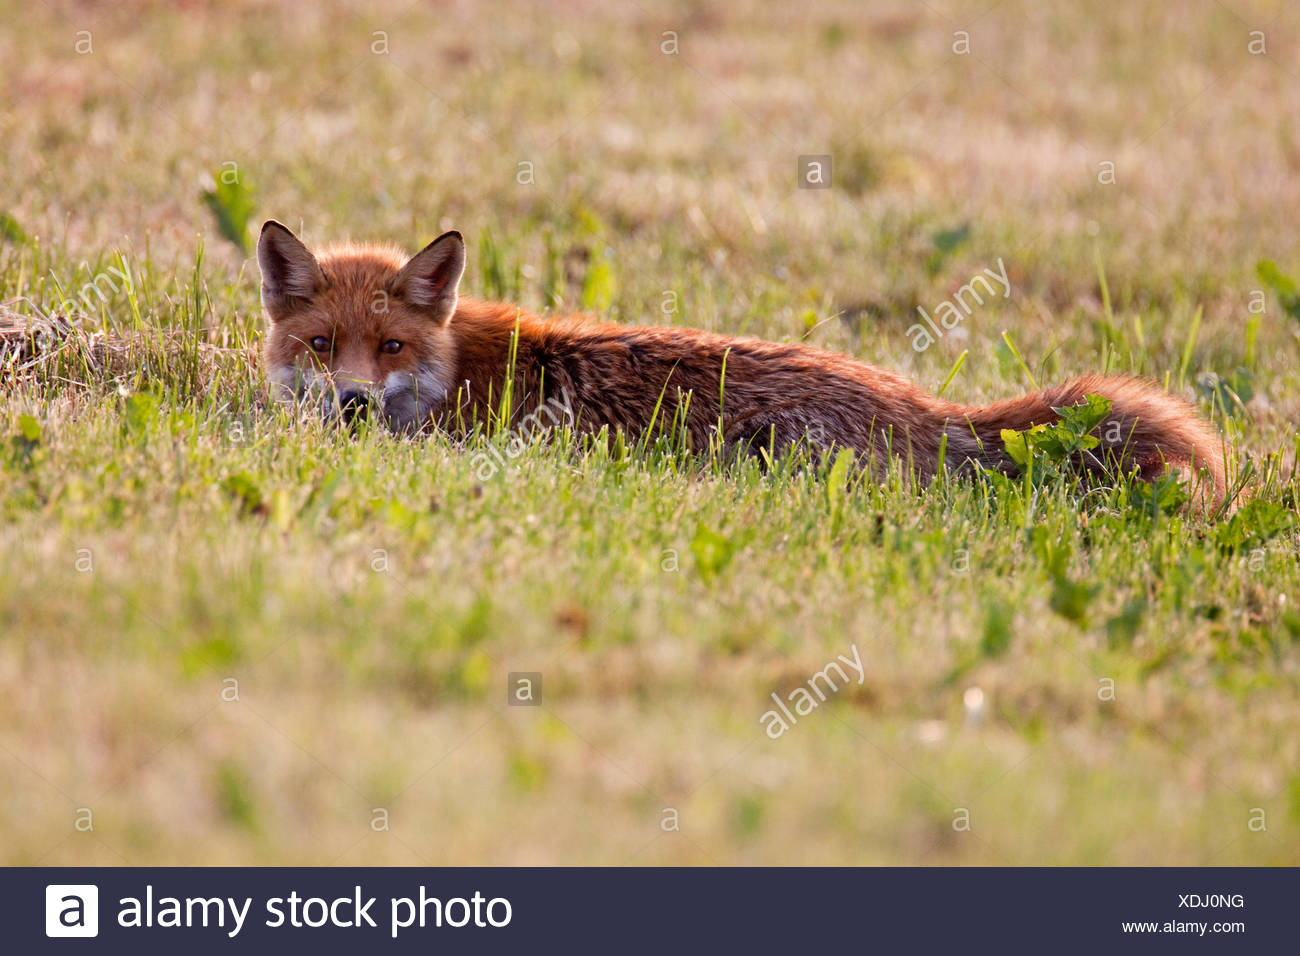 Red Fox (Vulpes vulpes) crouching in the grass - Stock Image